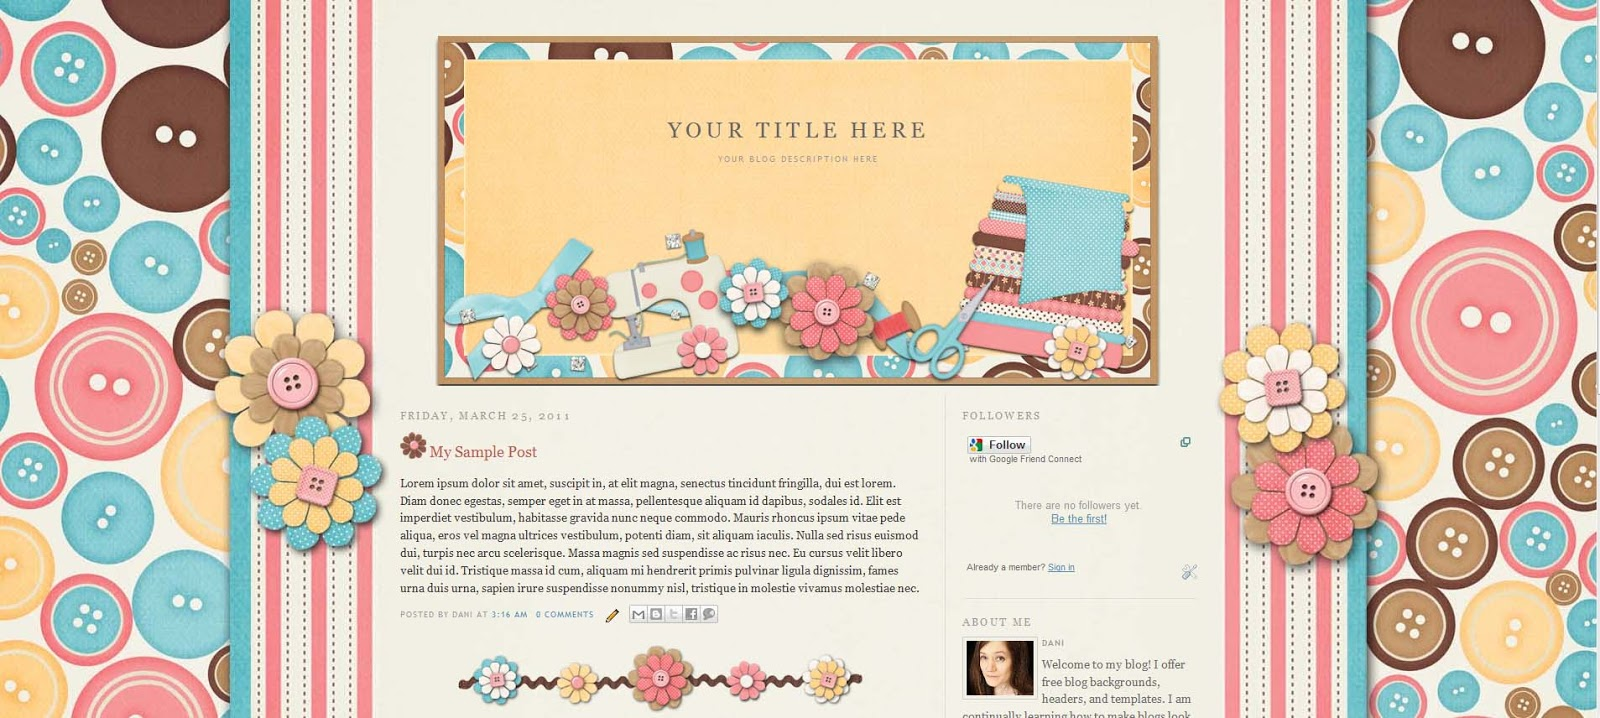 blog designs by dani march 2011